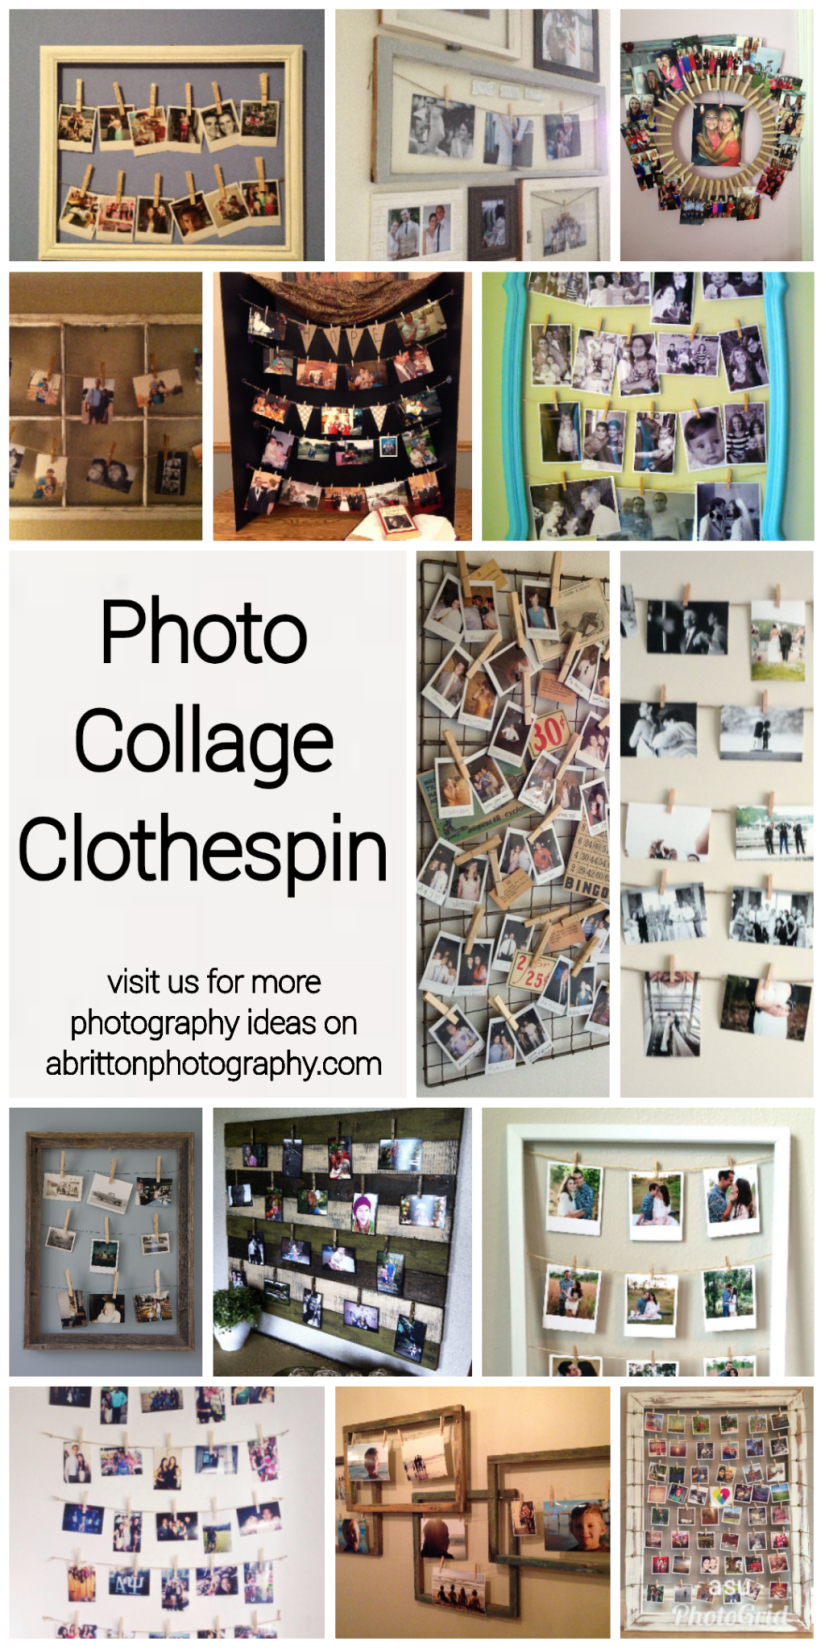 clothespin photo collage ideas